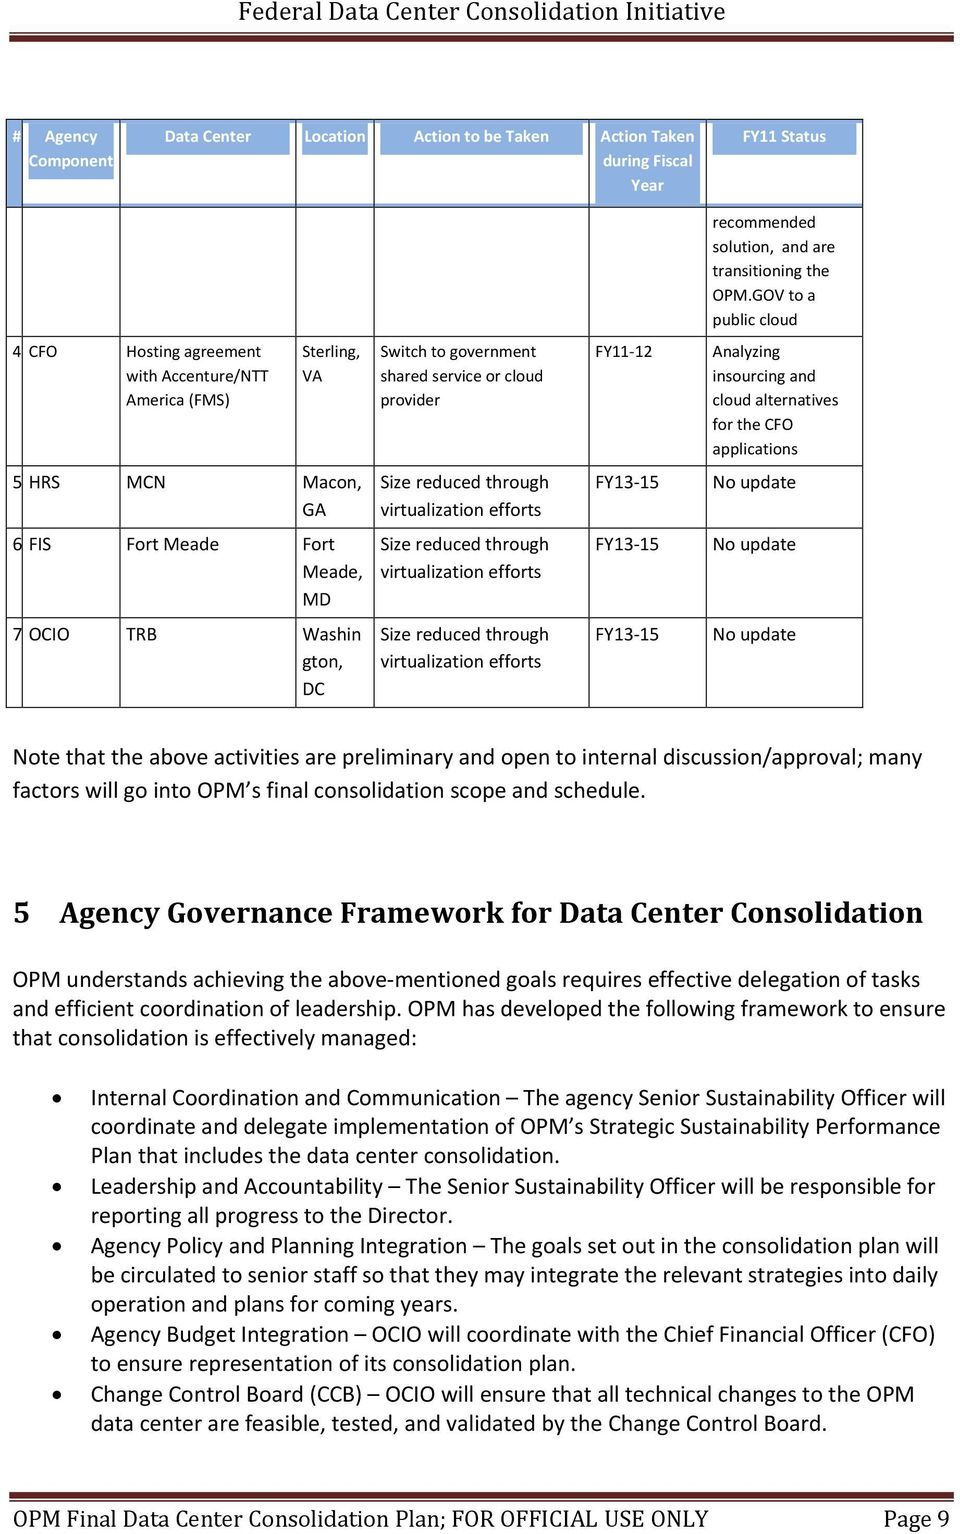 reduced through virtualization efforts FY11 12 FY13 15 FY13 15 FY13 15 recommended solution, and are transitioning the OPM.